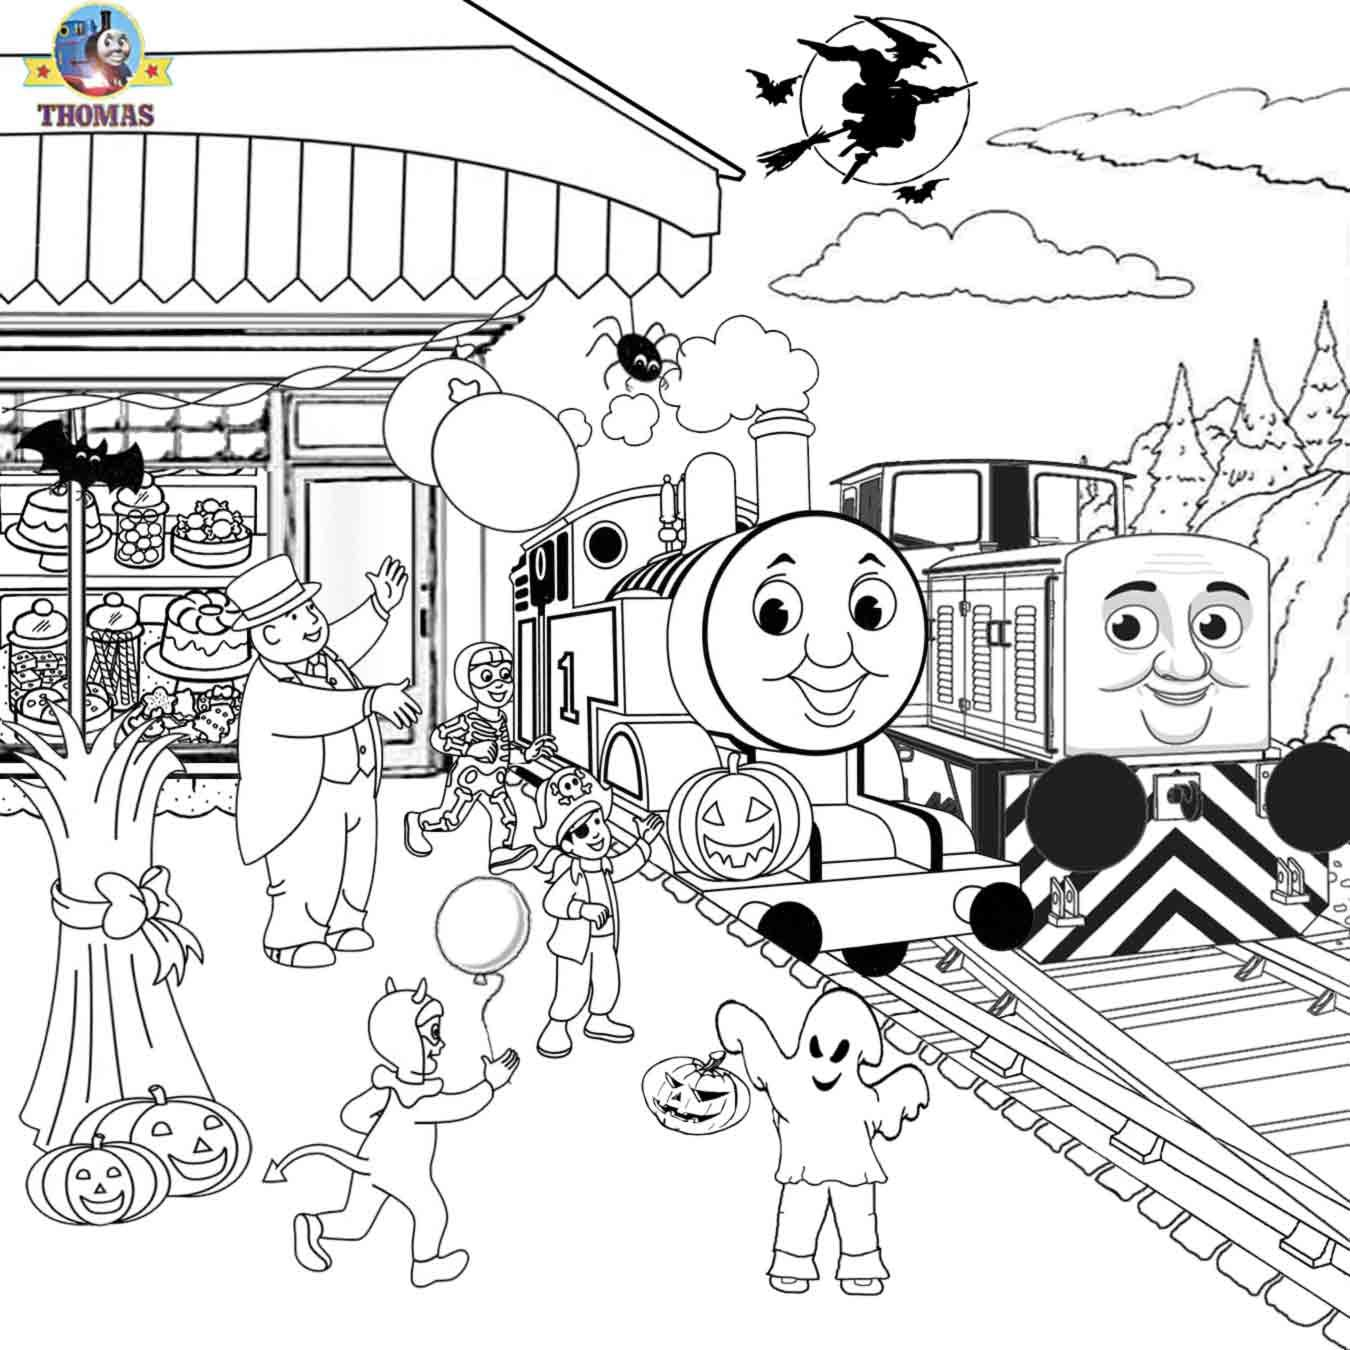 1350x1350 Diesel Den Thomas The Train Coloring Pages Free Printables